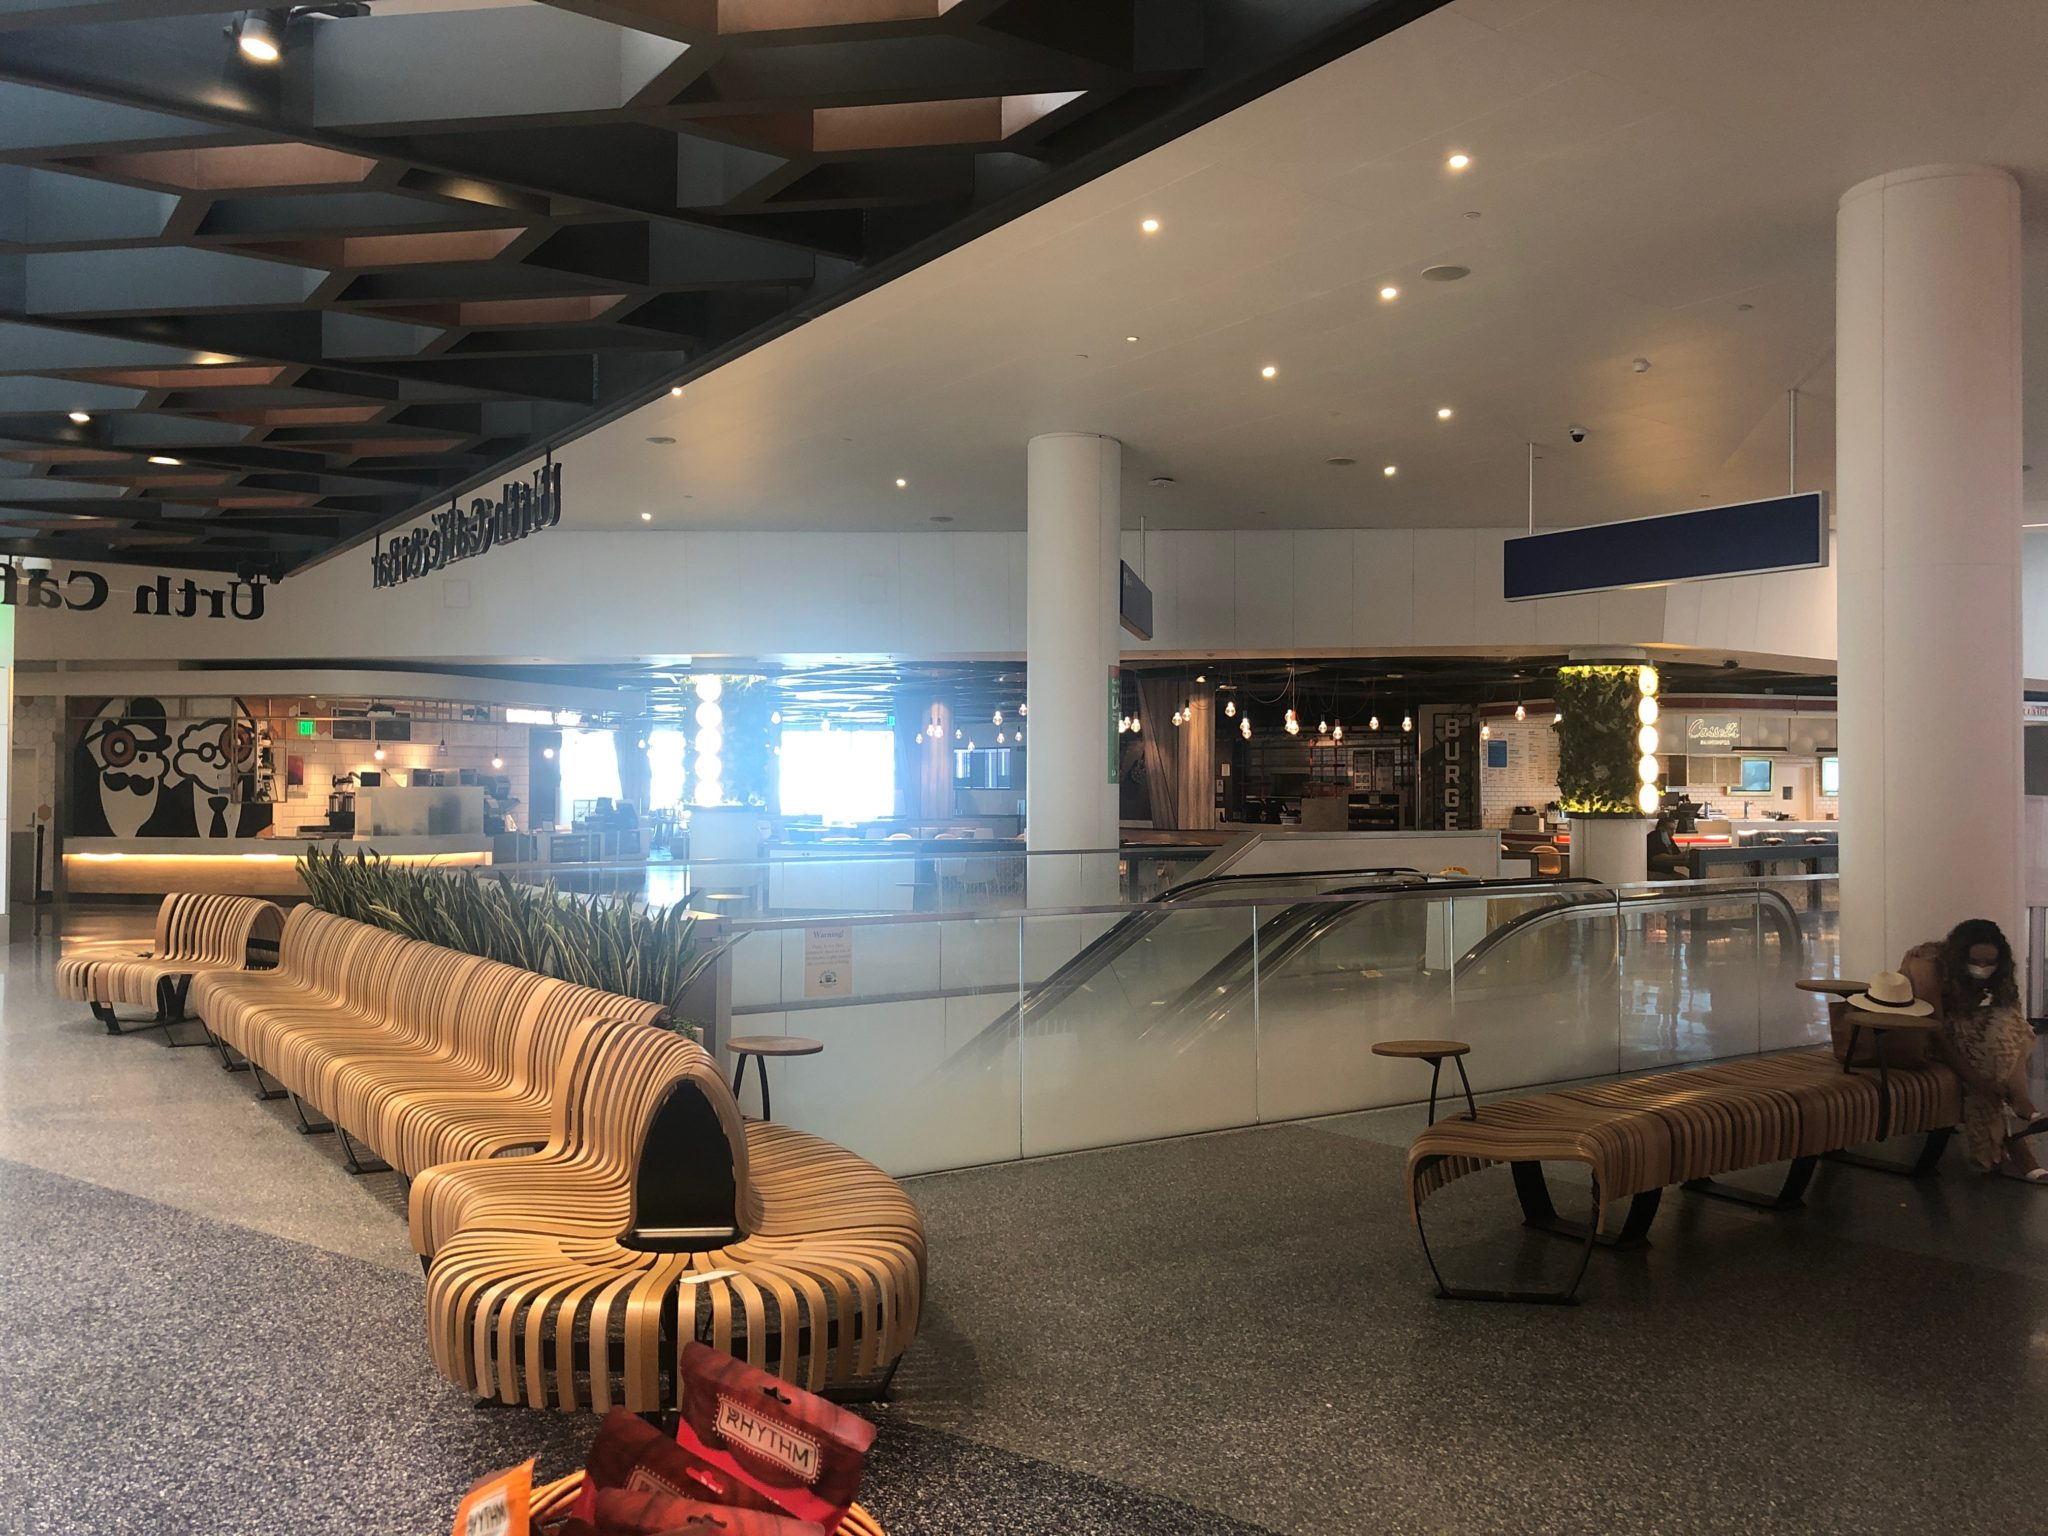 Empty bench-style seats and empty halls at LAX